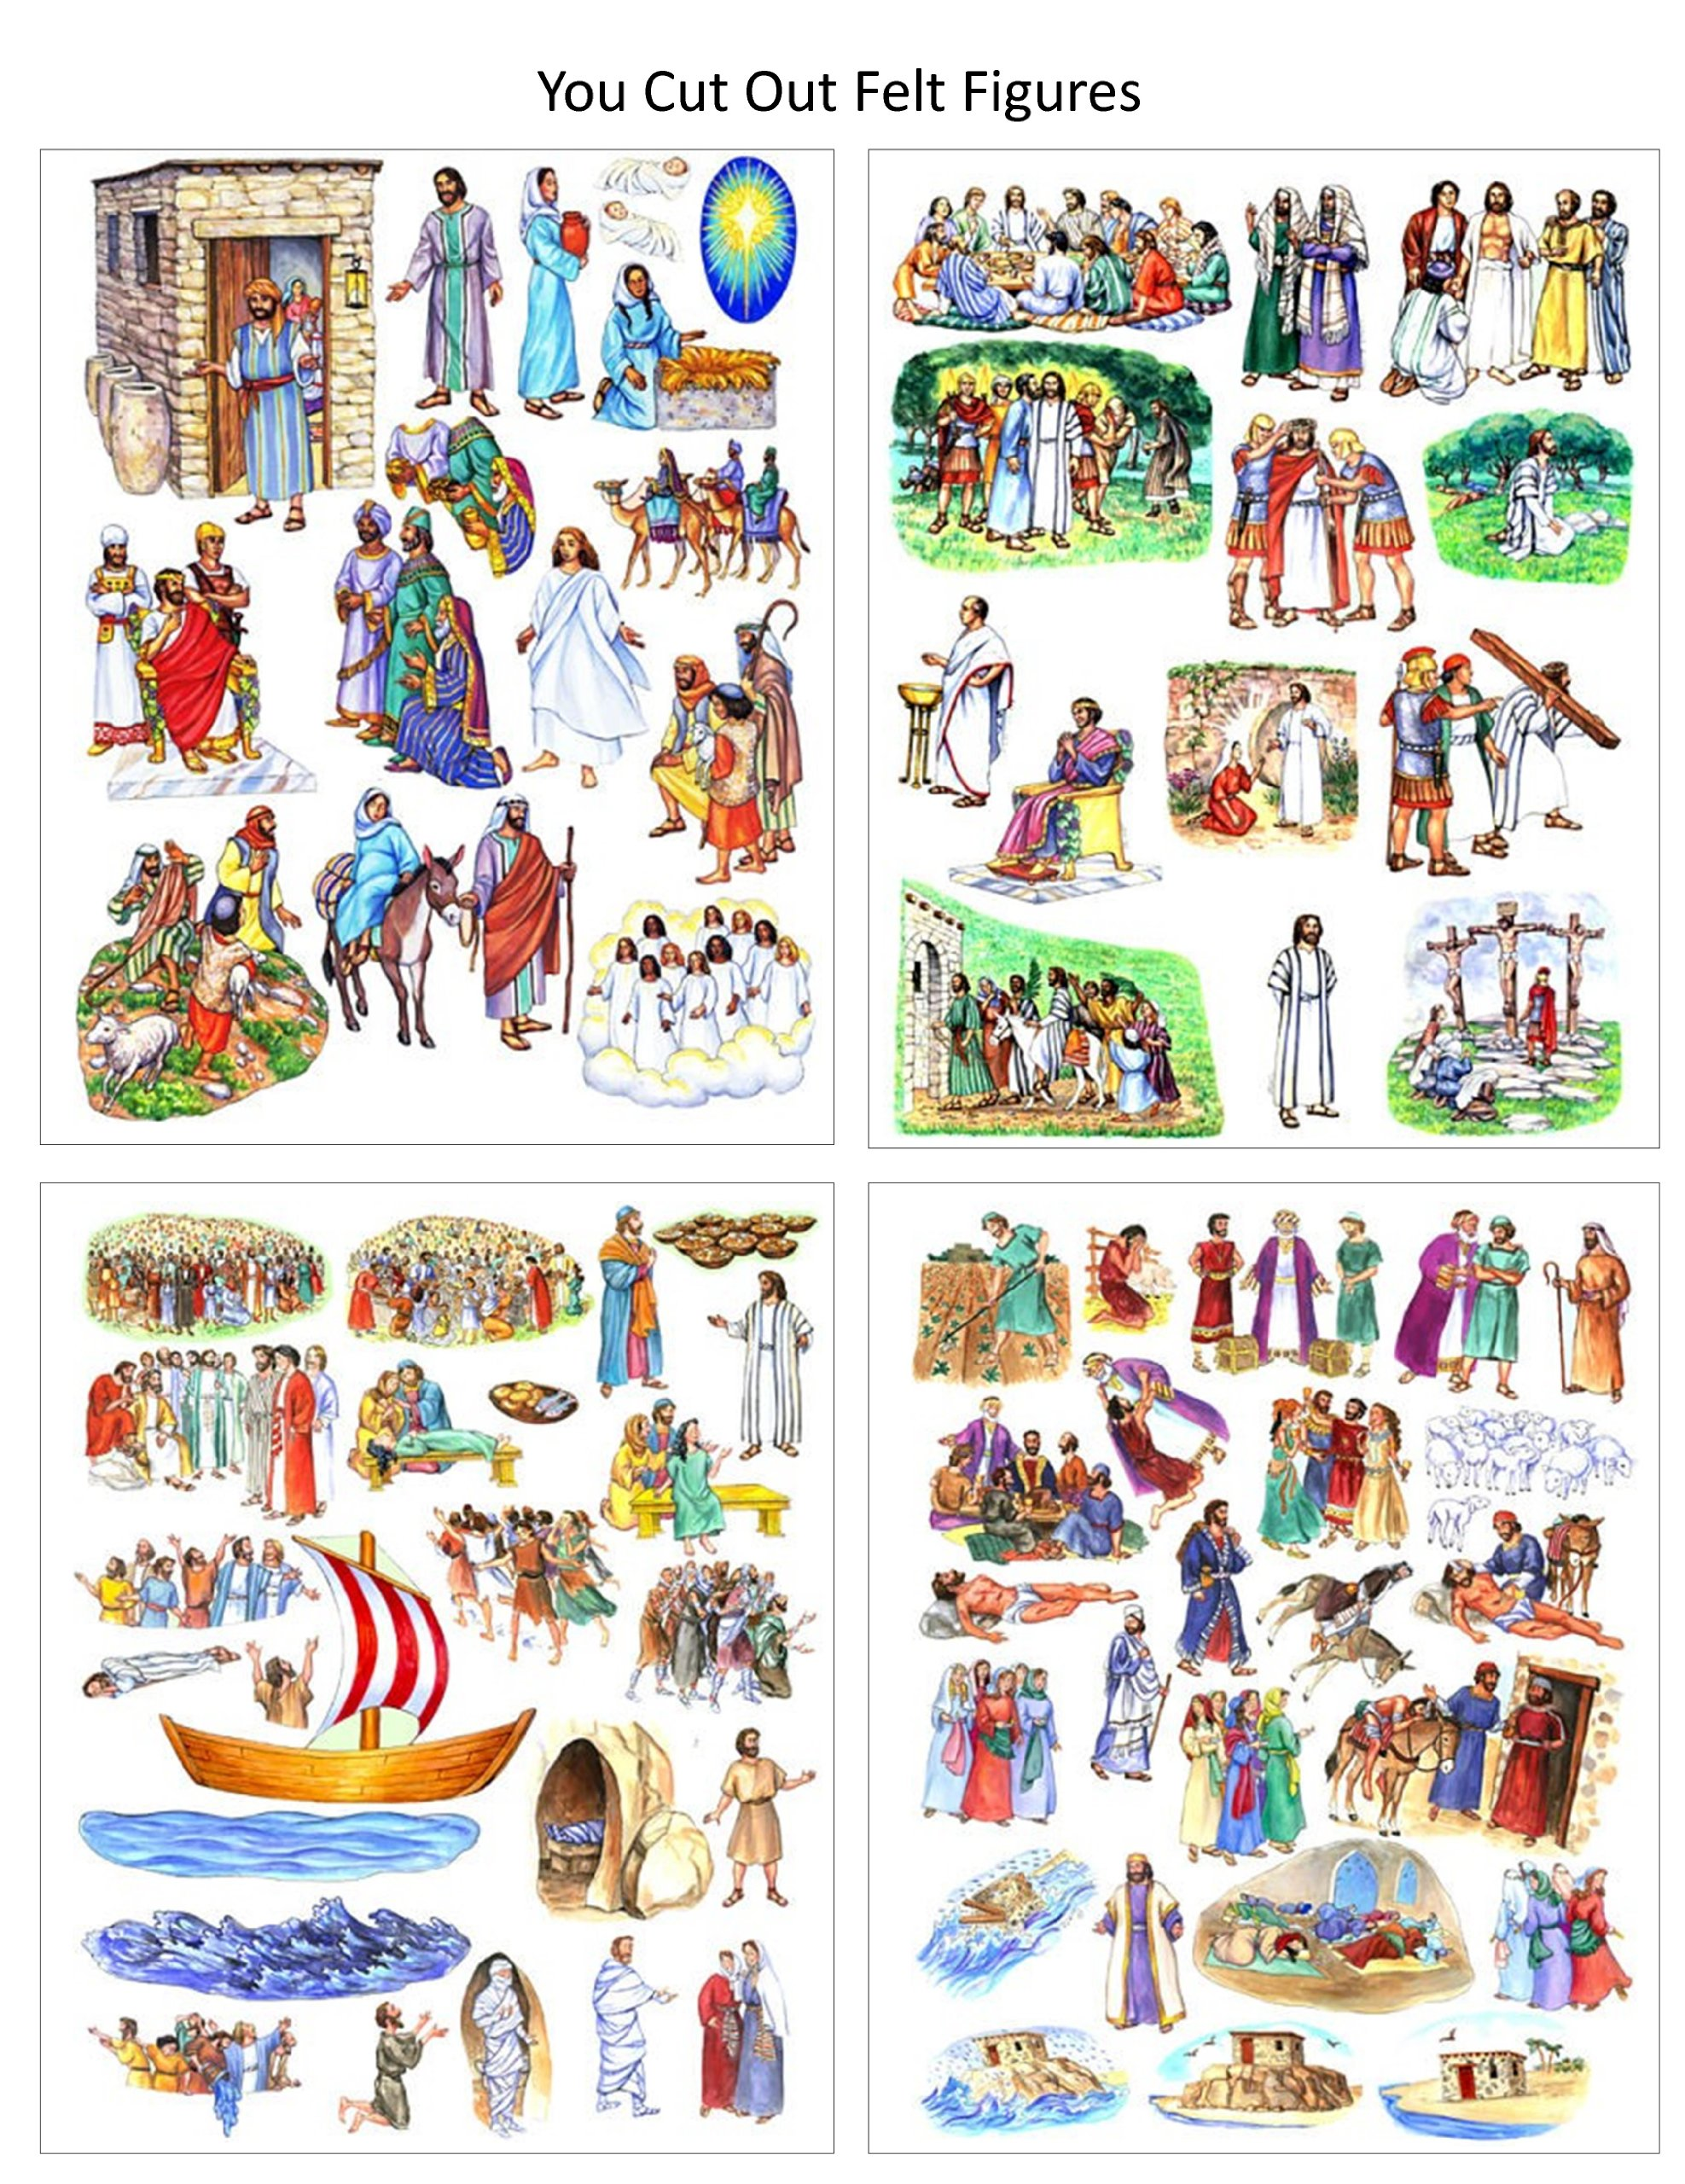 You Cut Out Felt- 13 Jesus Bible Stories Birth Crucifixion Parables Miracles- Felt Figures for Flannel Board Story Time Felts